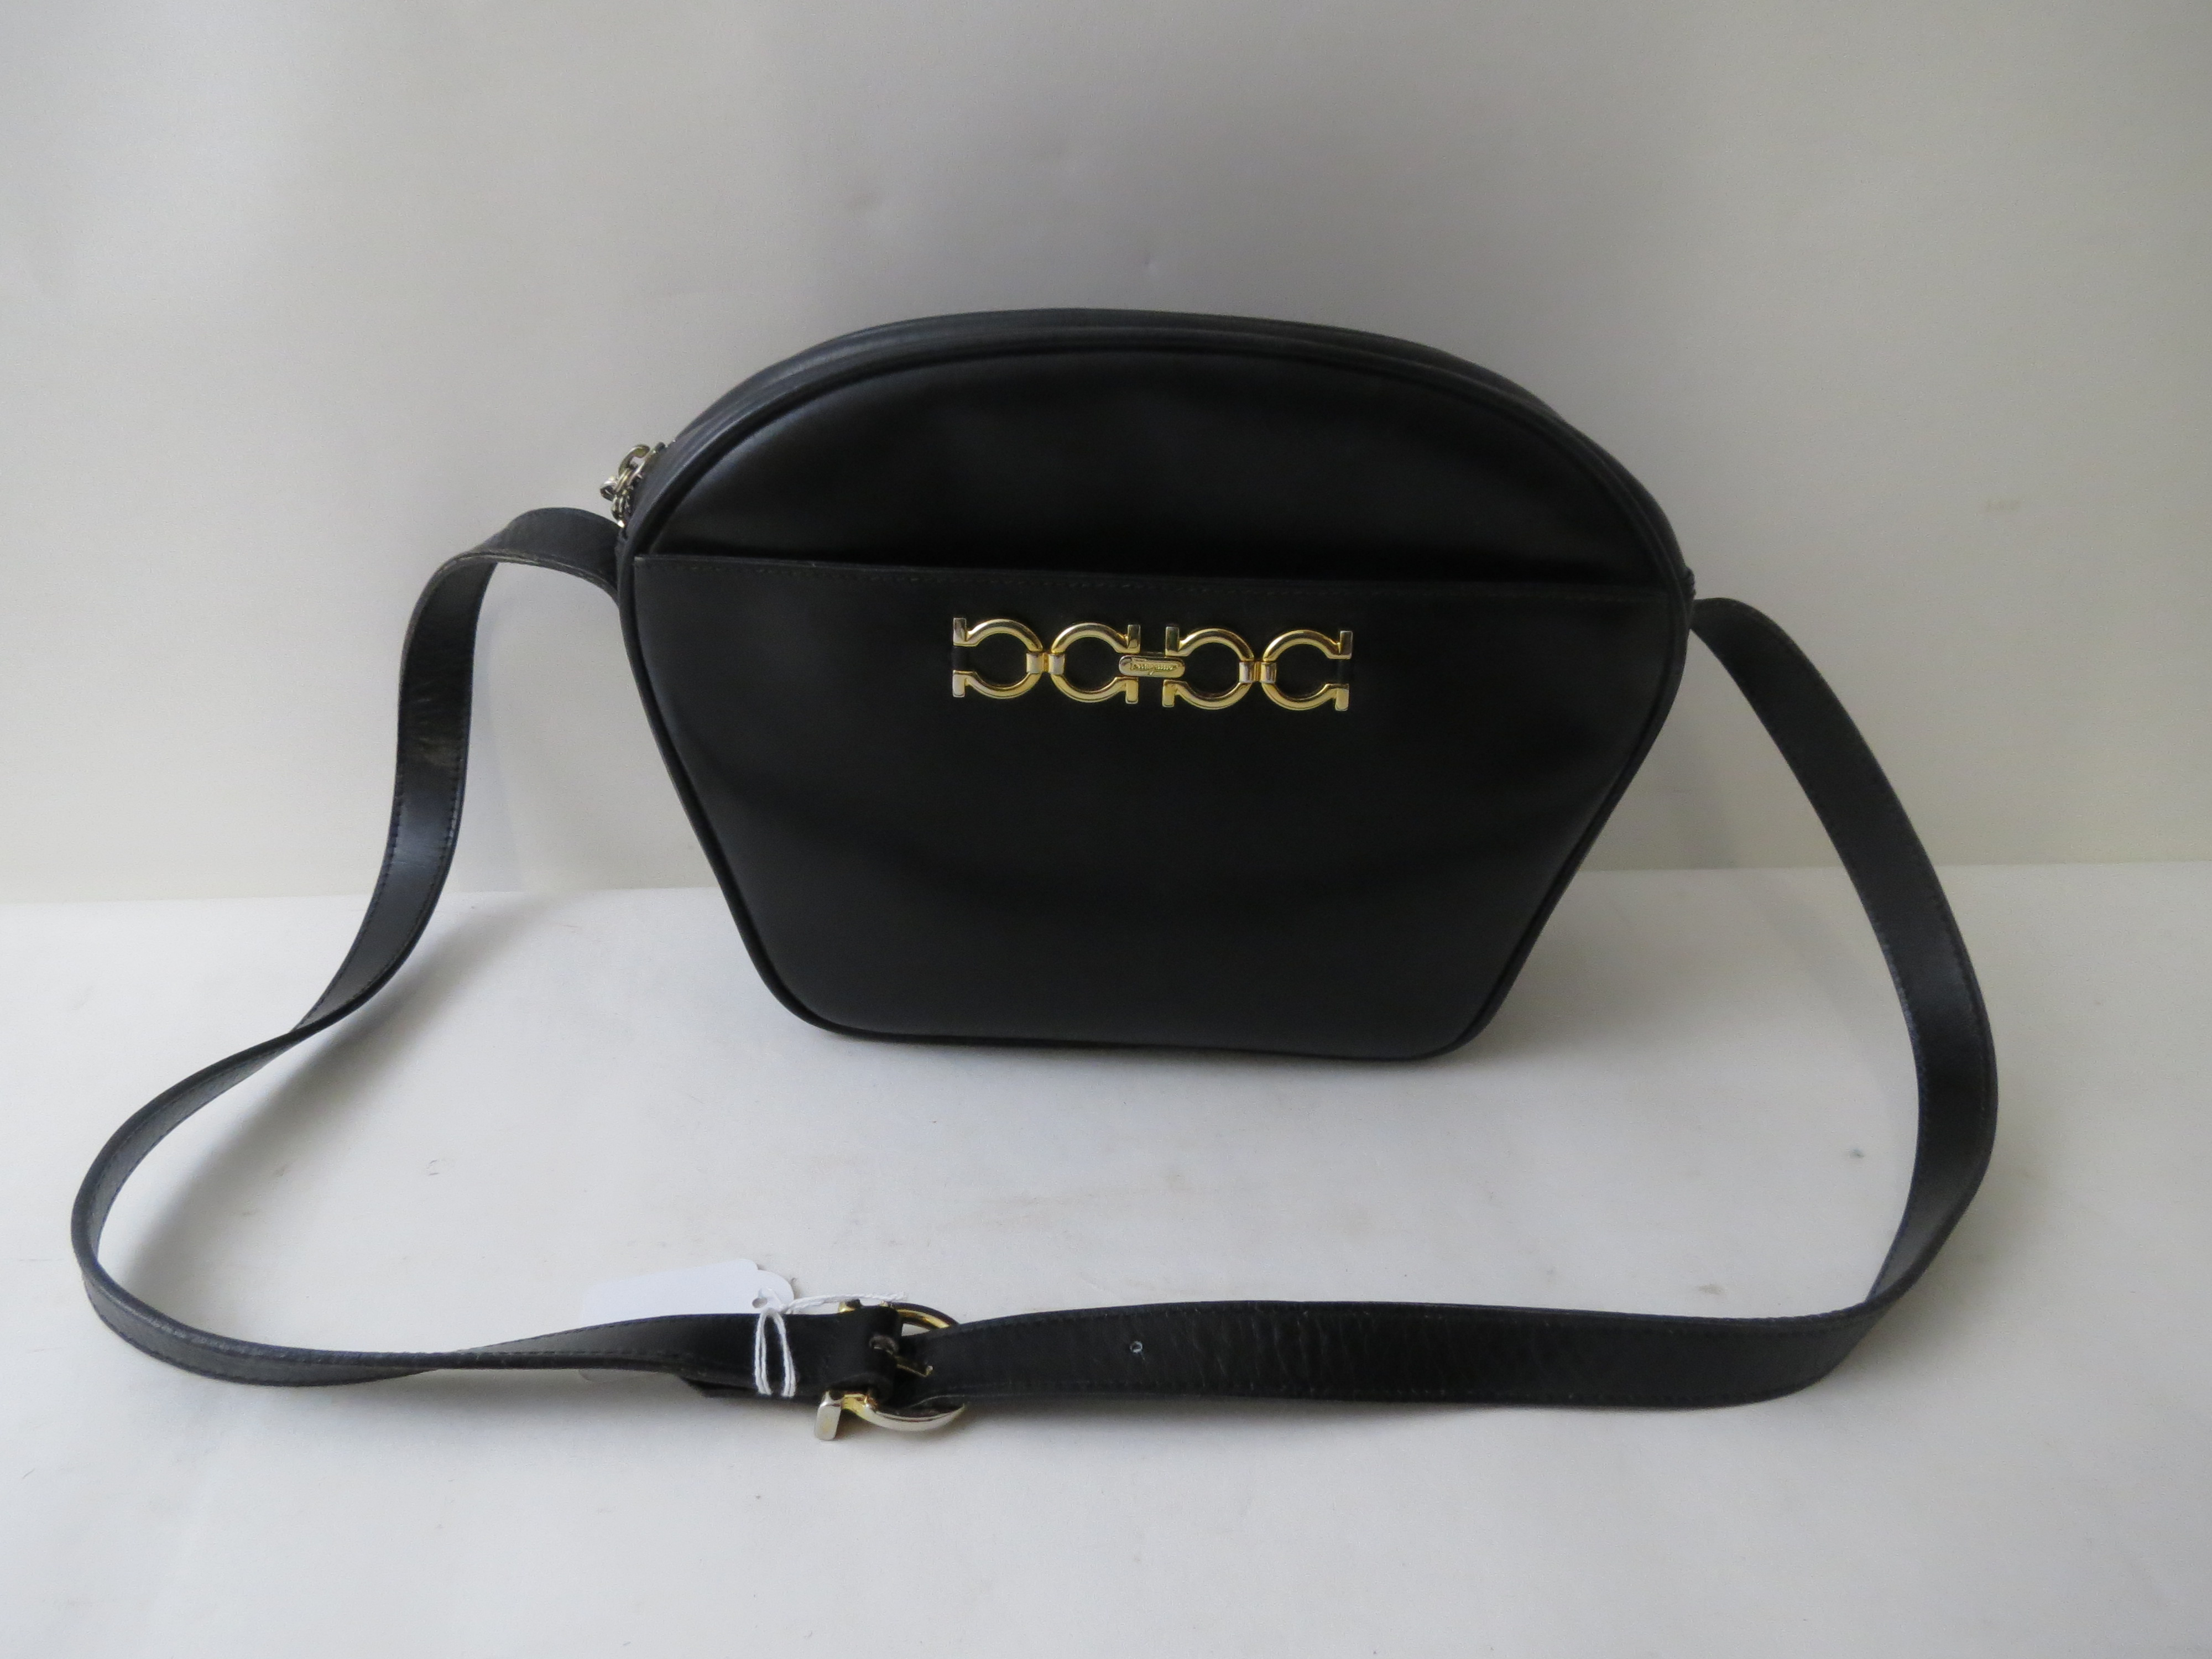 Lot 165 - A black Salvatore Ferragamo Italian leather shoulder handbag e91d984583f7e